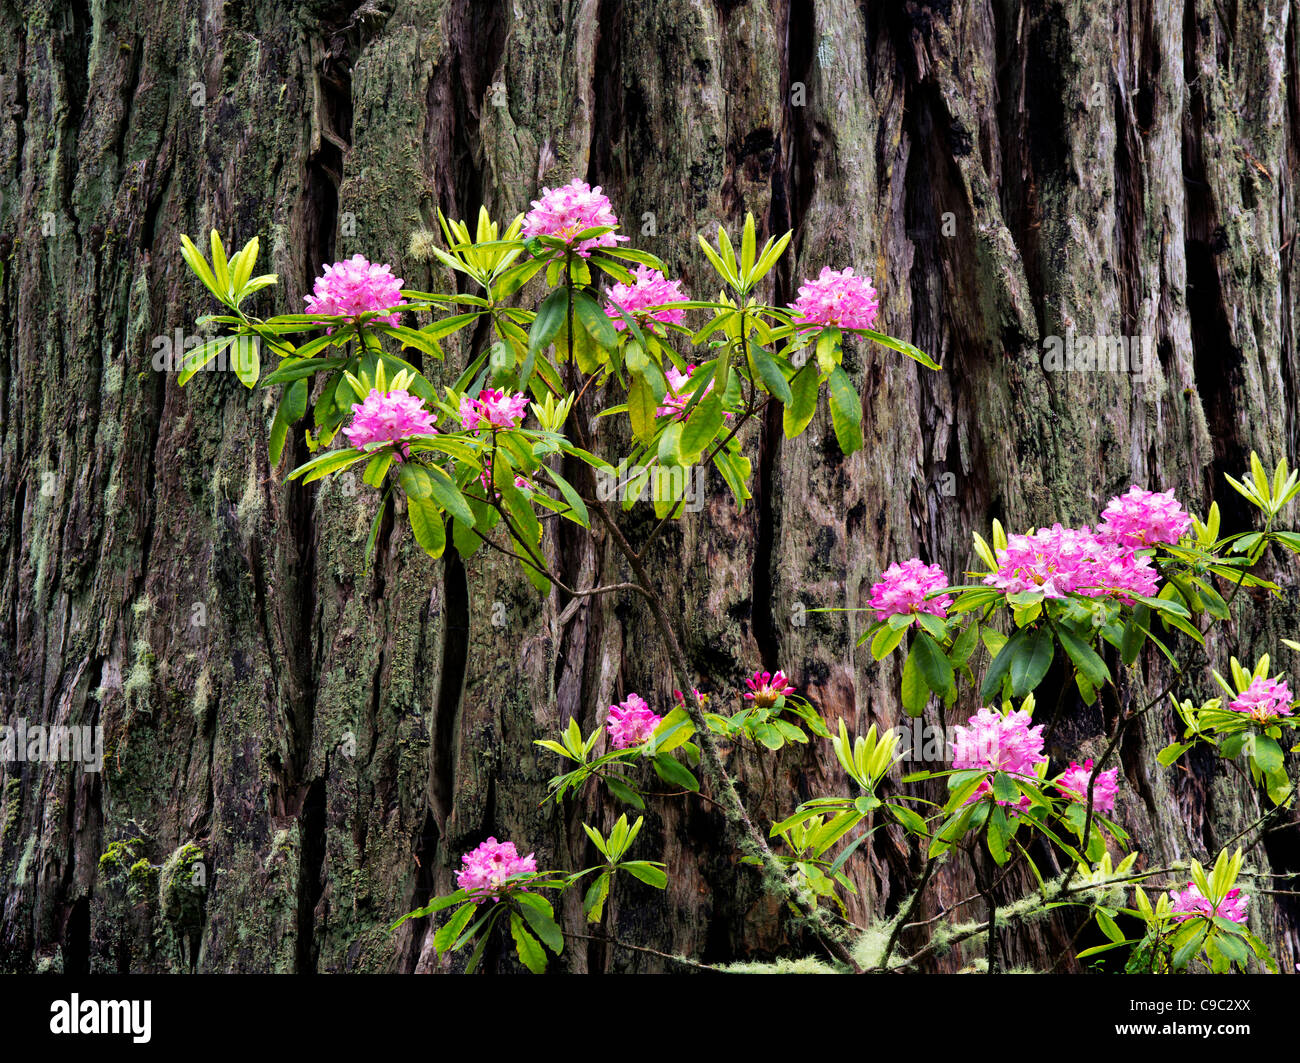 Blooming Rhododendrons and redwood tree. Redwood National and State Parks, California - Stock Image